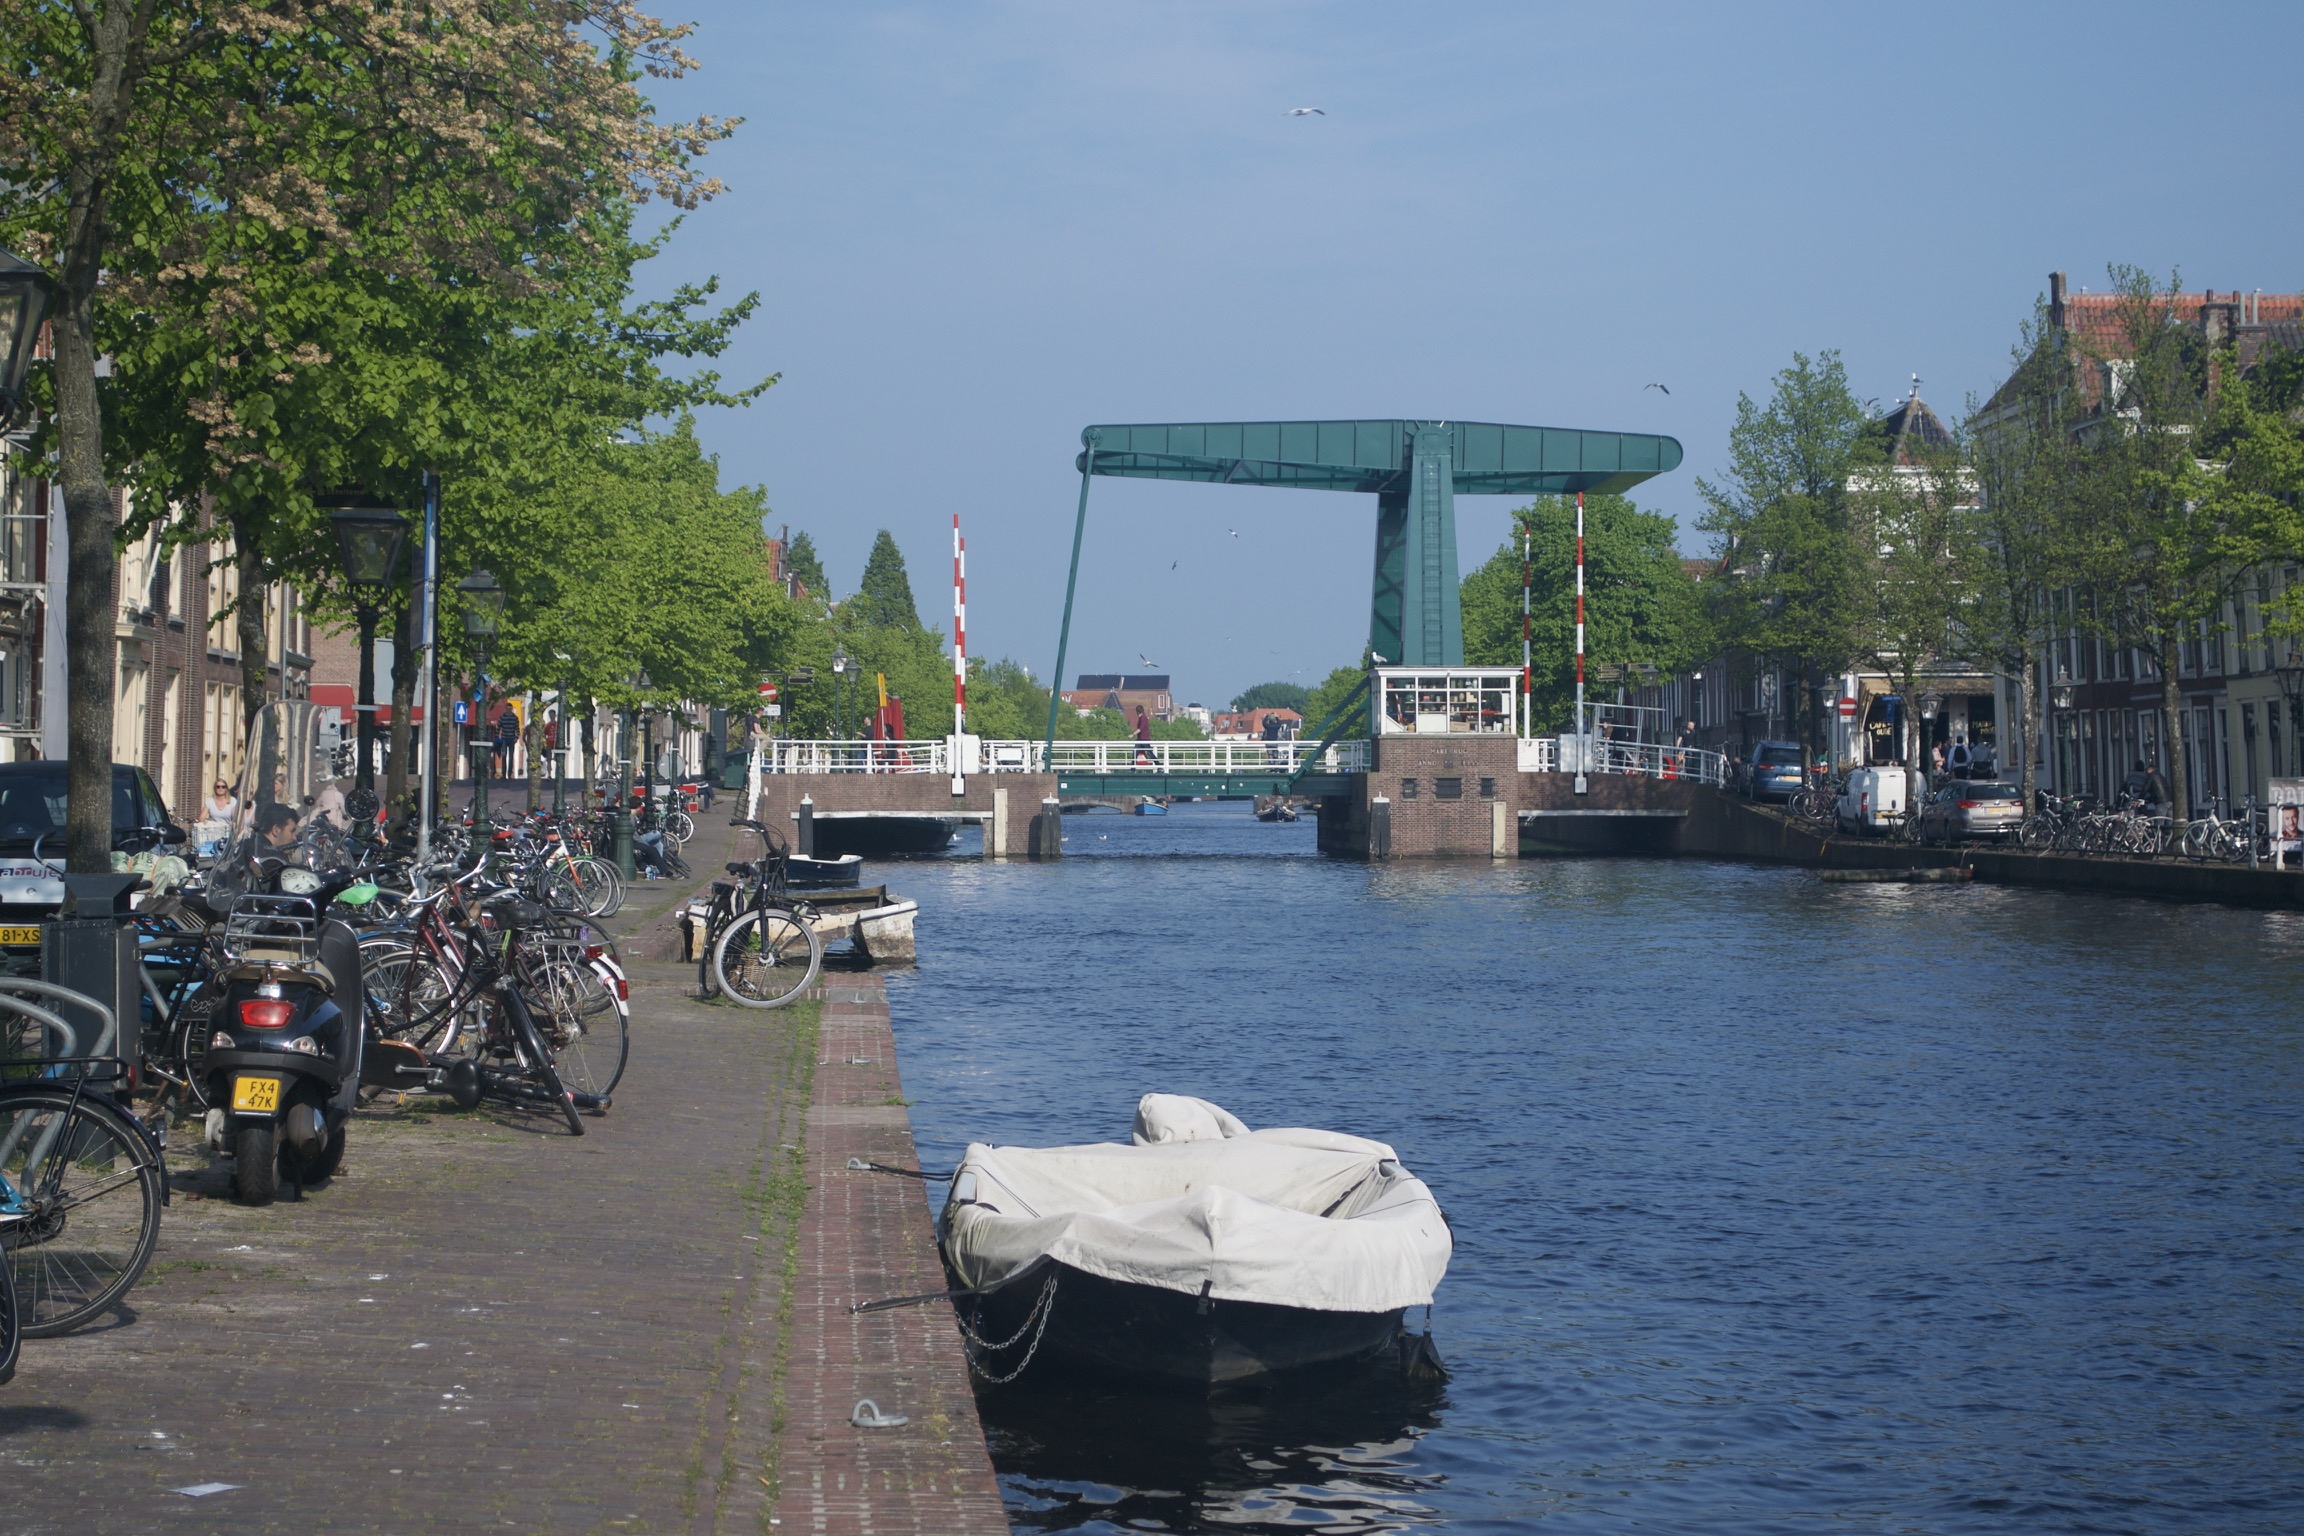 A boat tied up on the side of a canal, with a cantilevered drawbridge in the background.